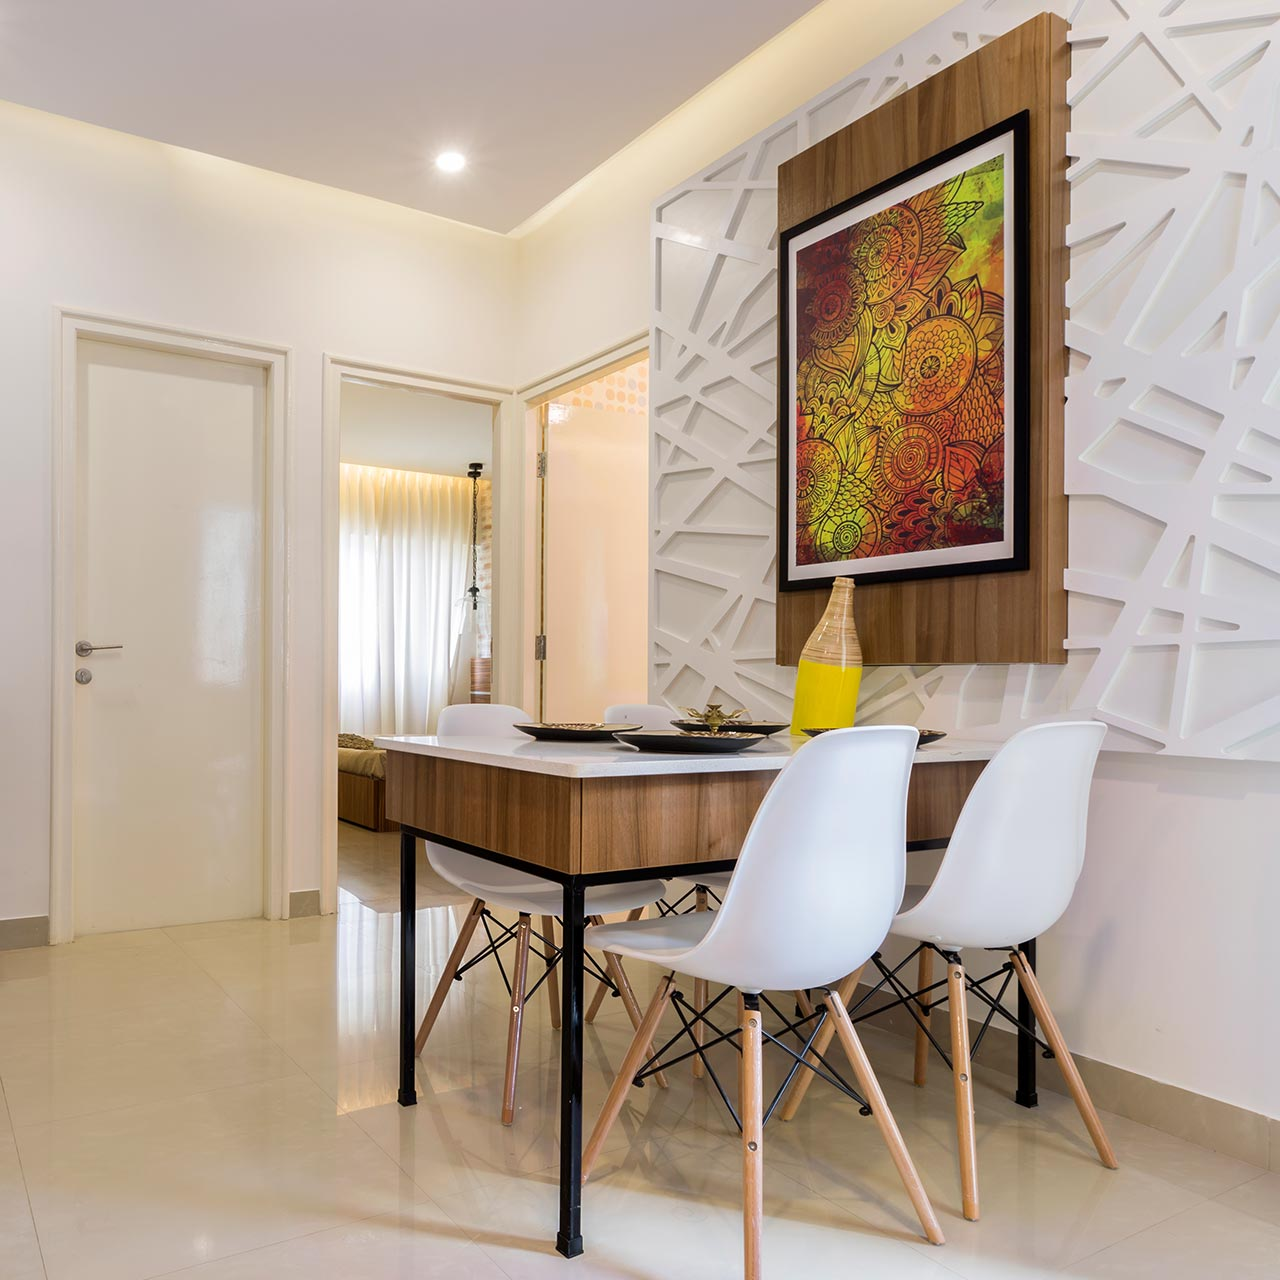 Difference between interior designer and decorator focuses on colour and furnishings and artistic decor